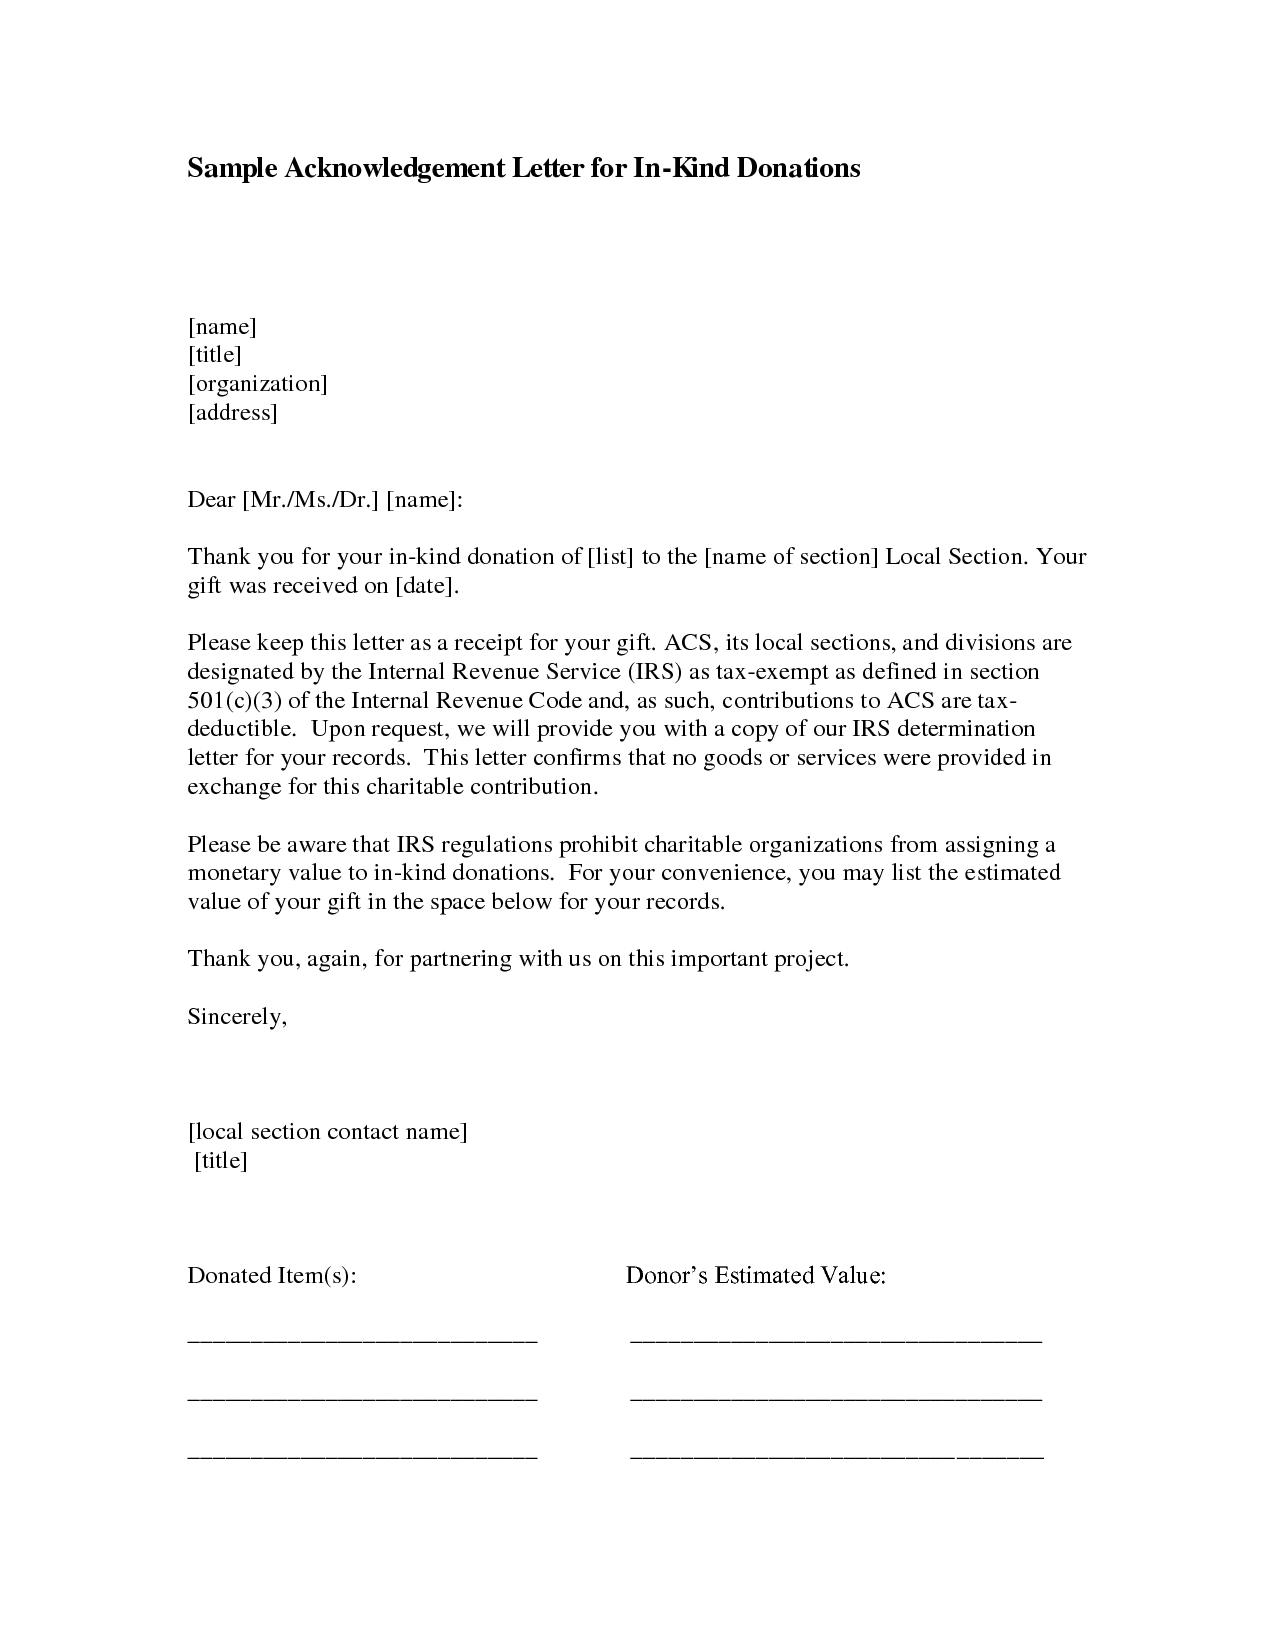 Acknowledgement Of Donation Letter Template - In Kind Donation Acknowledgement Include Photos Swim